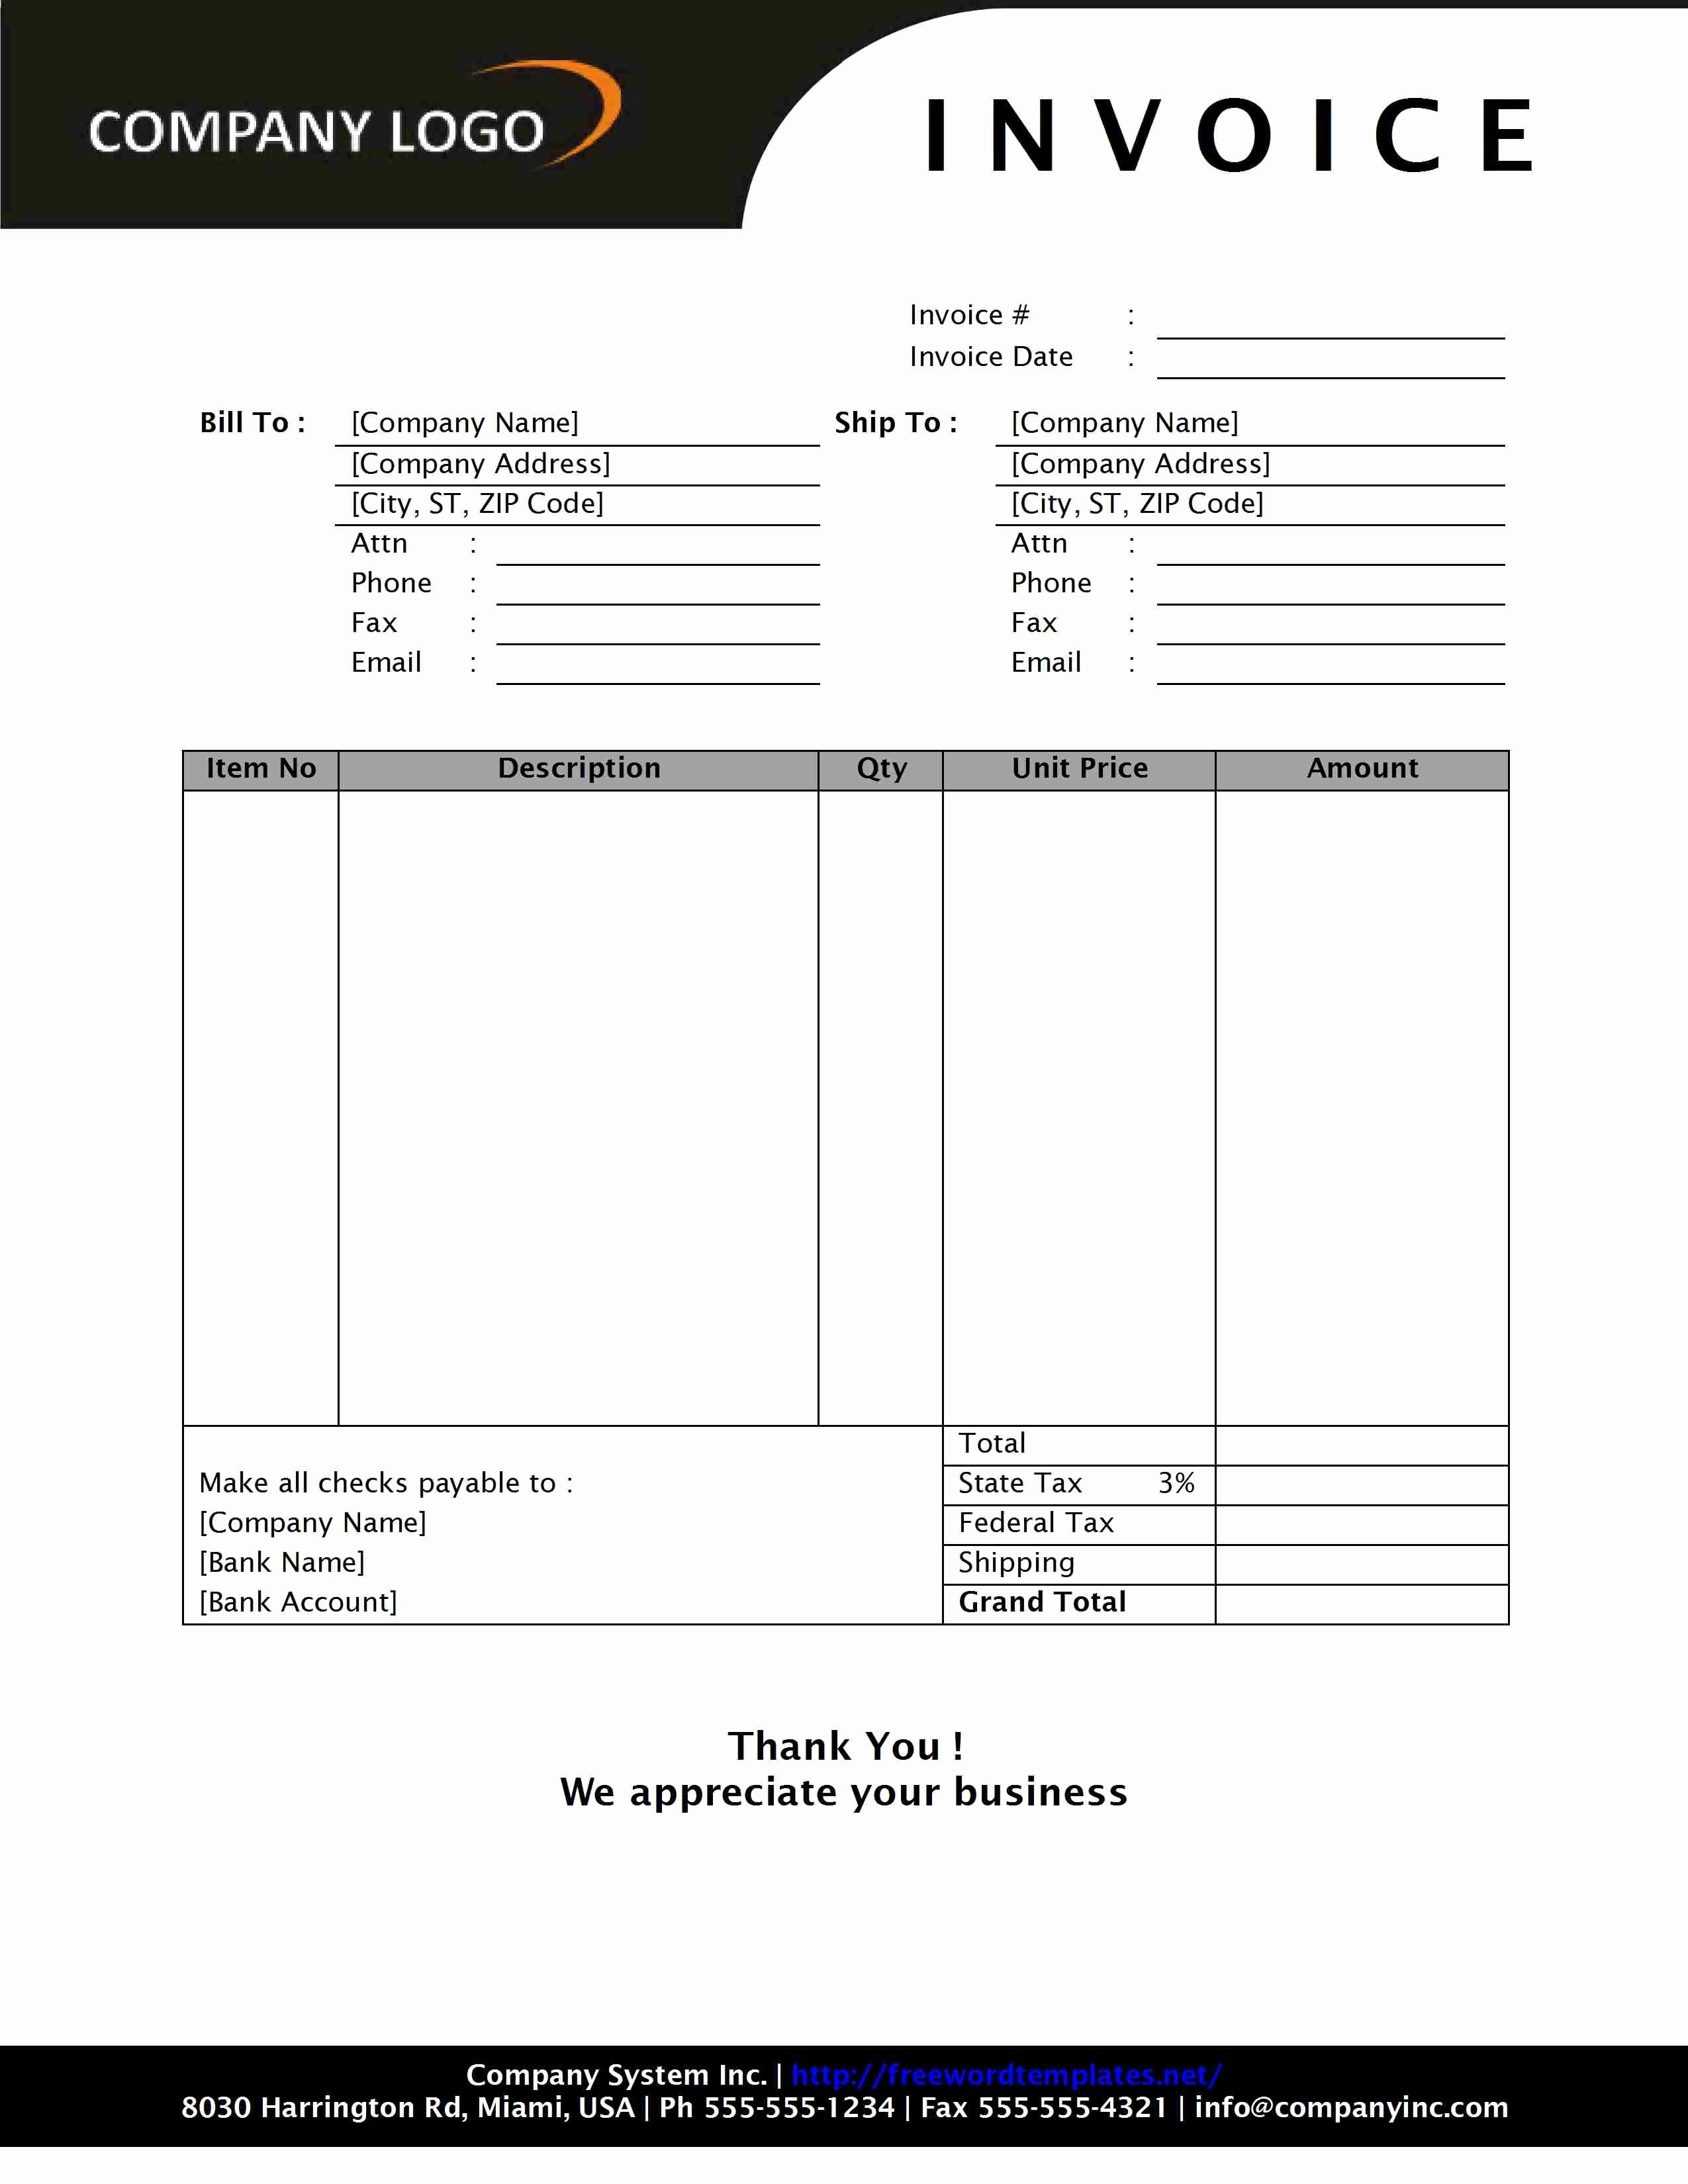 Paid Invoice Receipt Template Unique Proof Payment Receipt Portablegasgrillweber